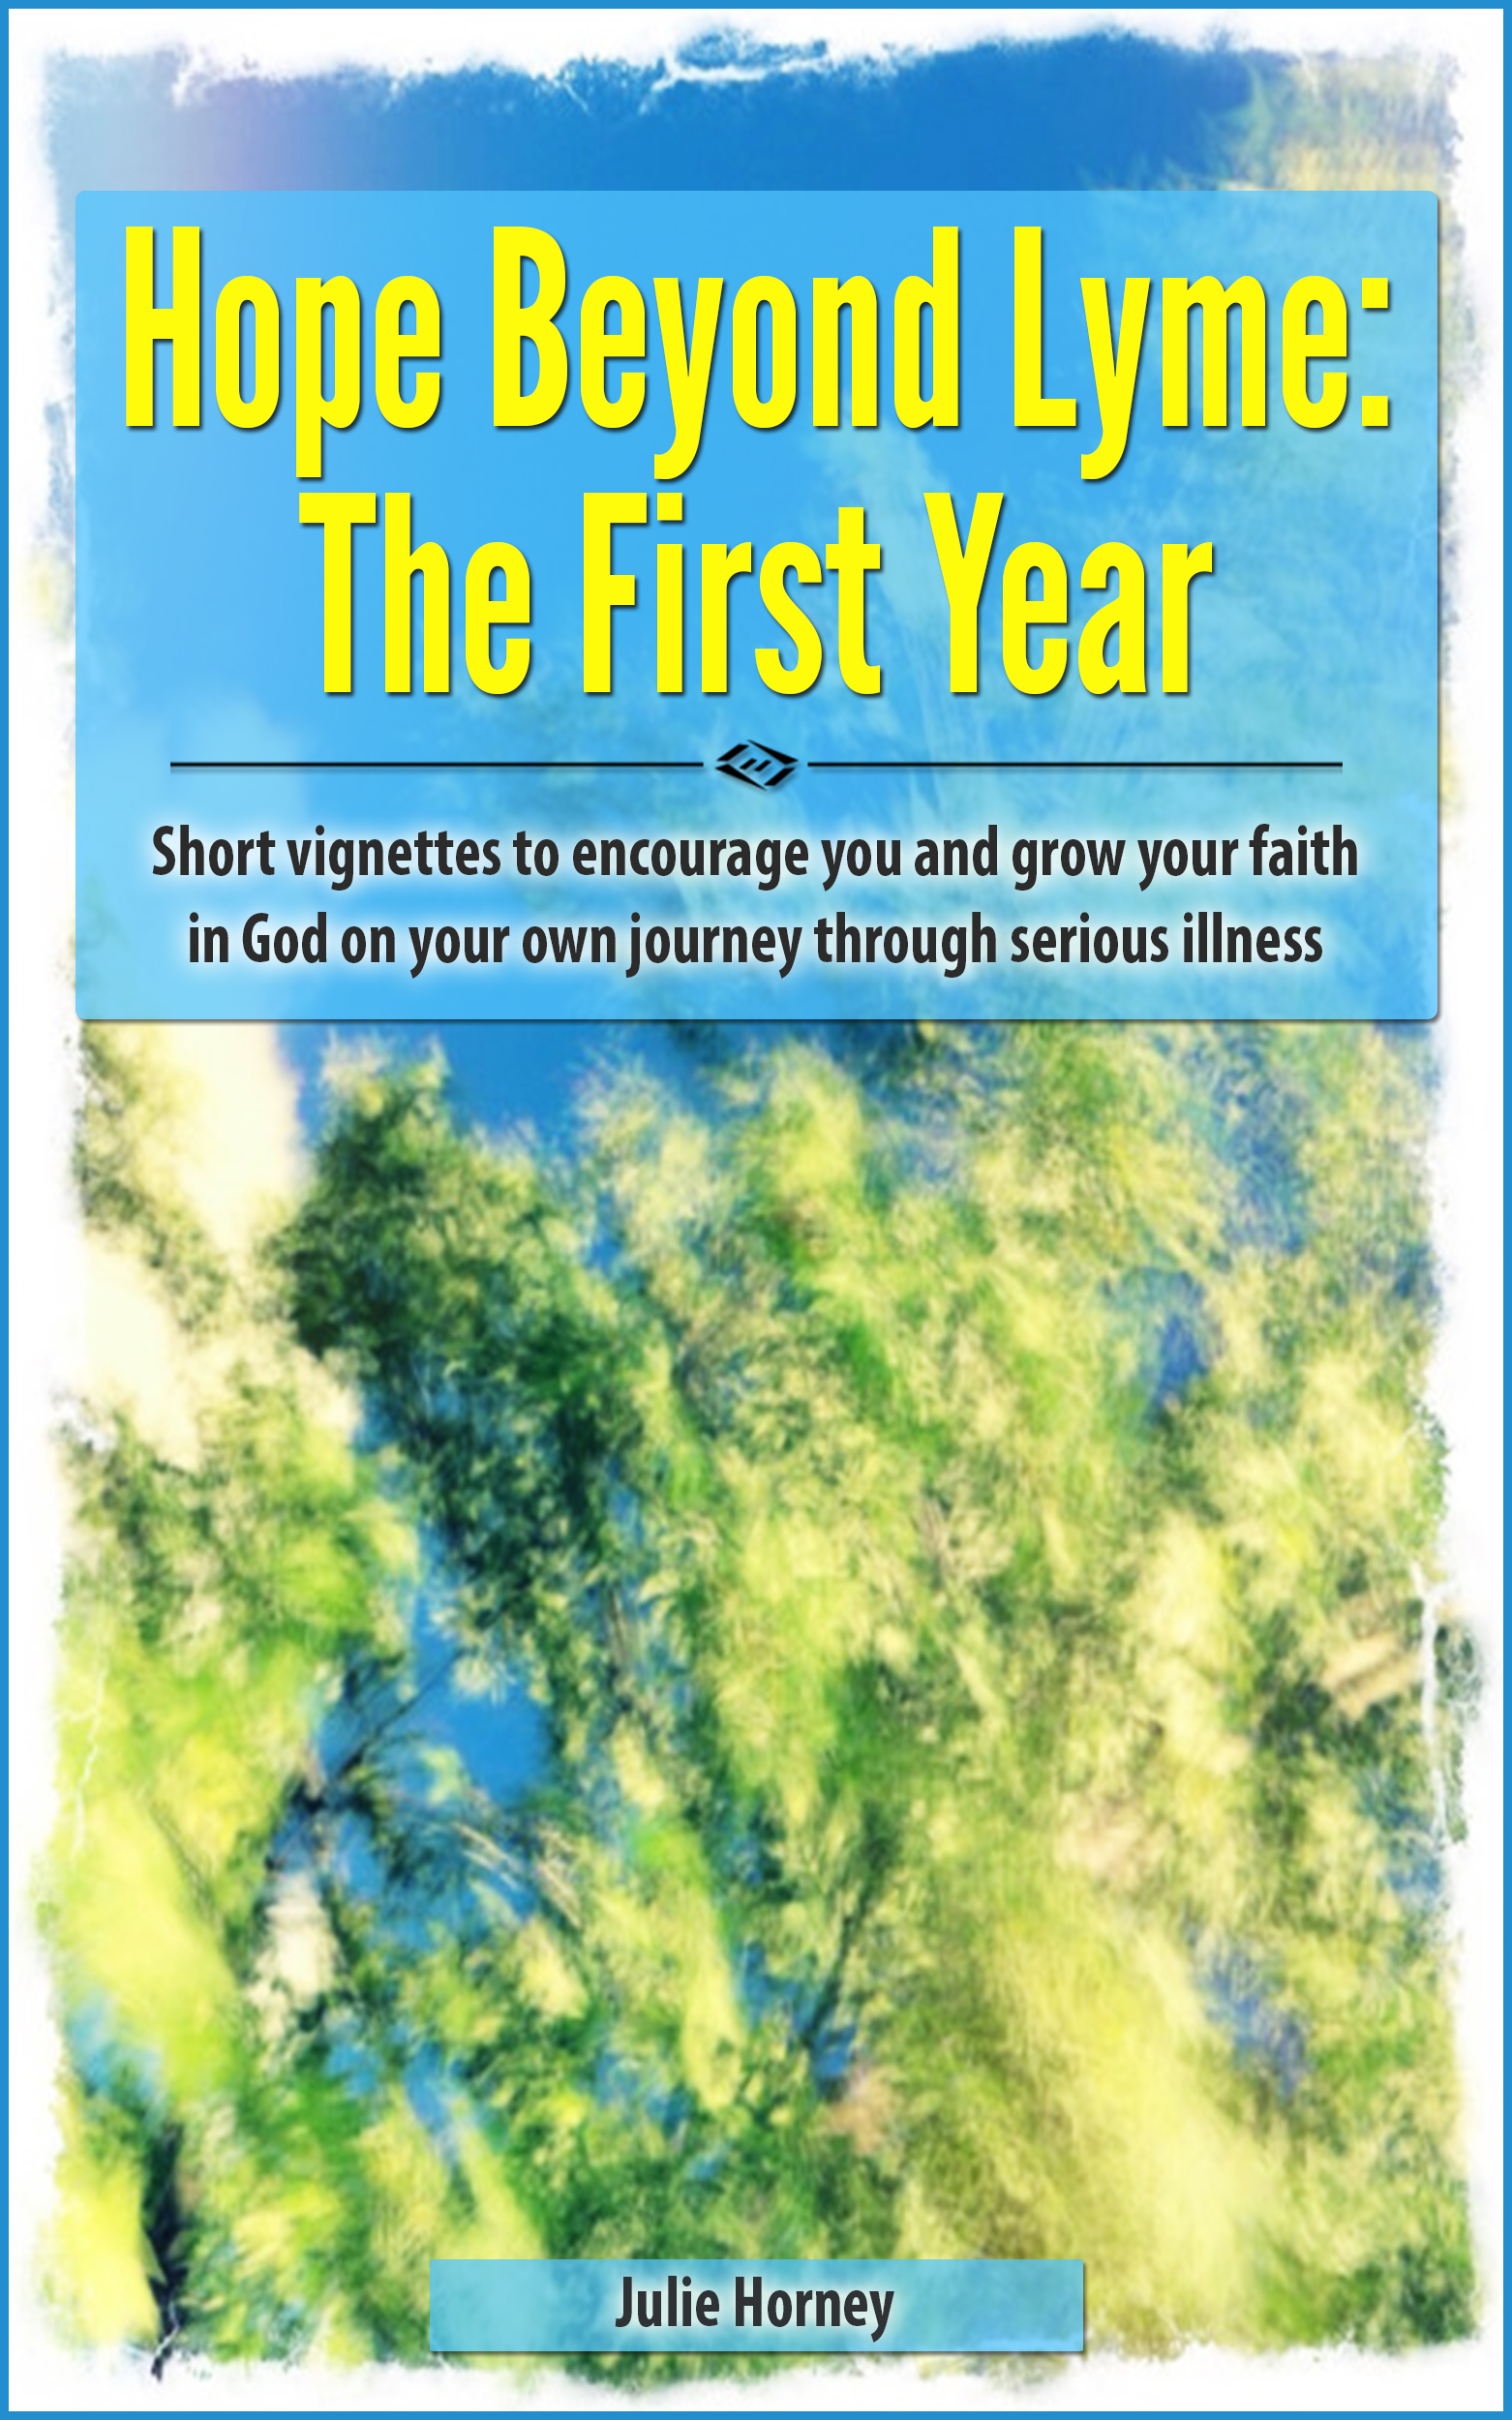 Gift idea to encourage those with chronic illness hope beyond hope beyond lyme the first year ebook now available on smashwords and amazon fandeluxe Gallery